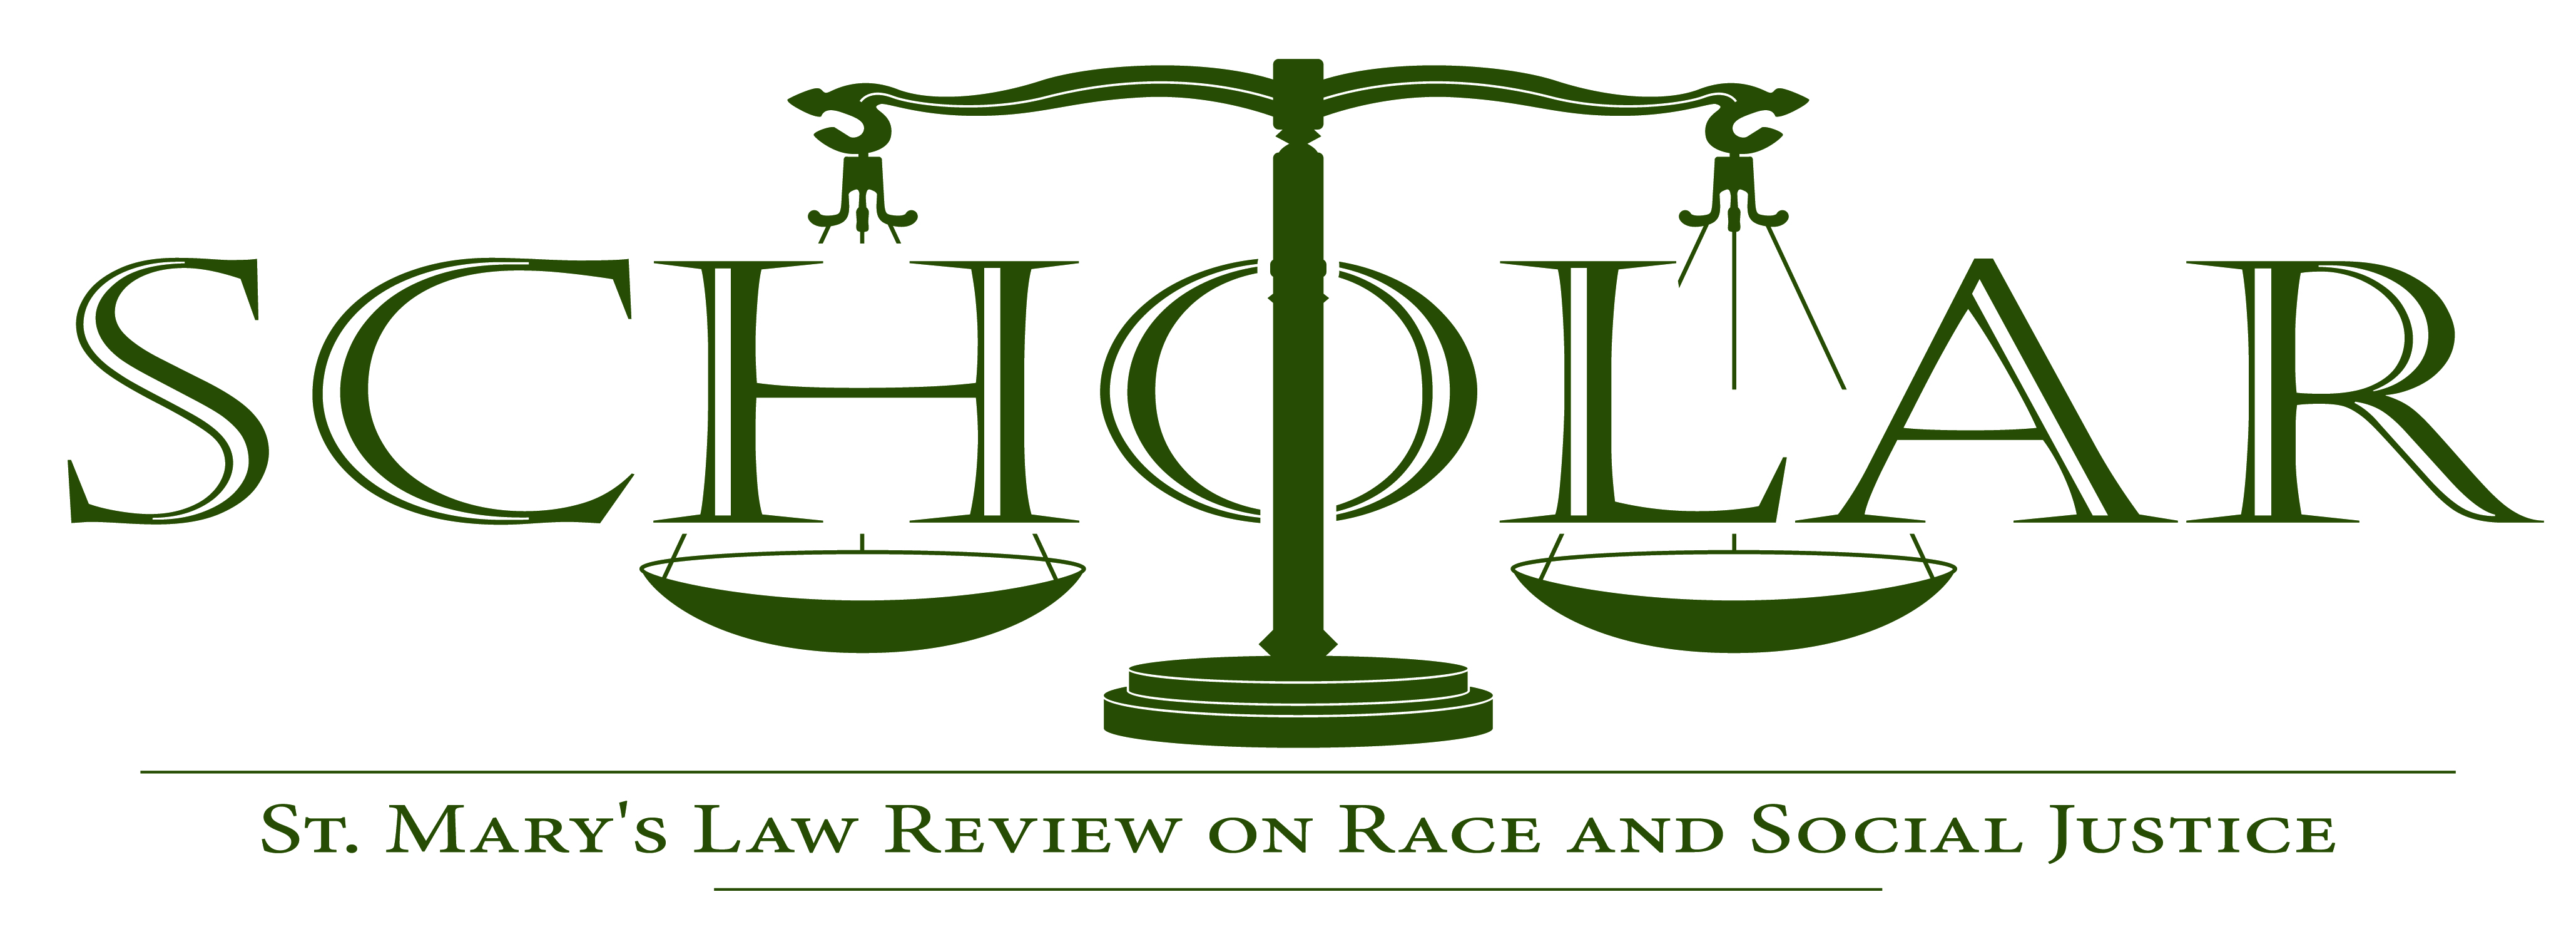 The Scholar: St. Mary's Law Review on Race and Social Justice